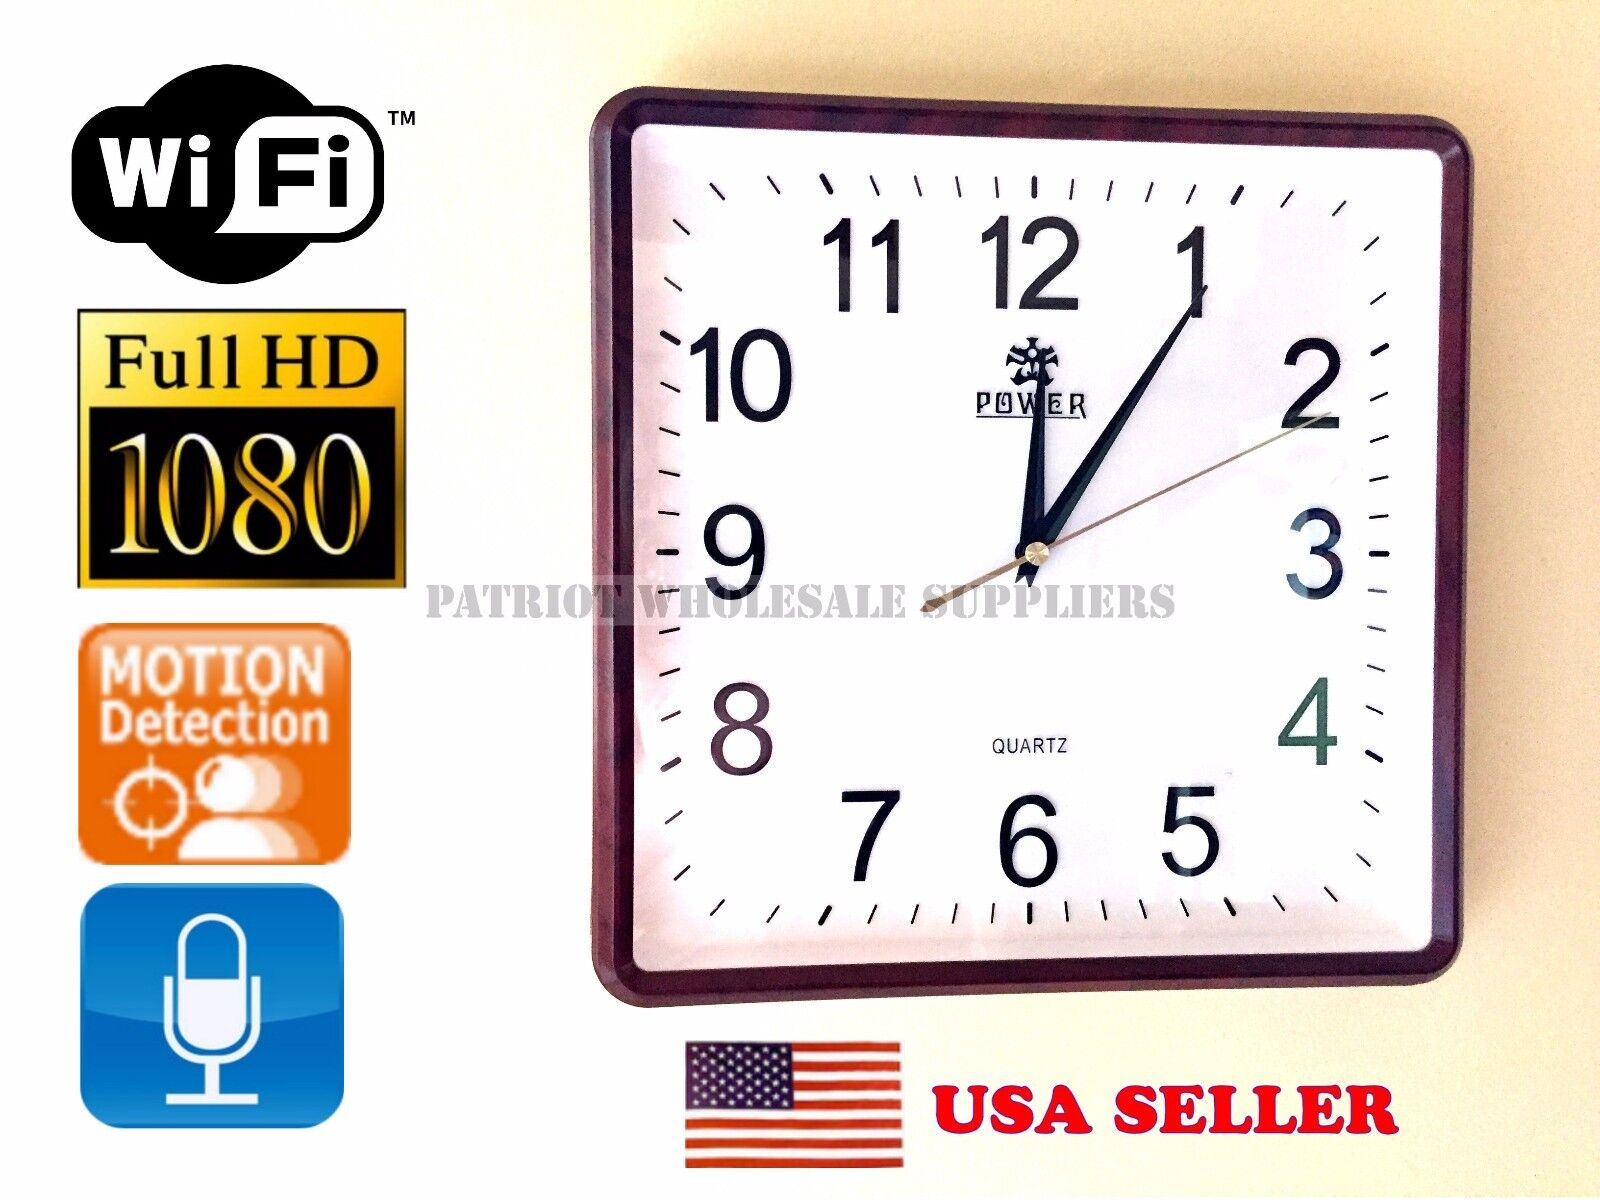 Wifi wall clock image collections home wall decoration ideas 1080p hd wifi ip hidden wall clock spy camera dvr motion detection 1080p hd wifi ip amipublicfo Images